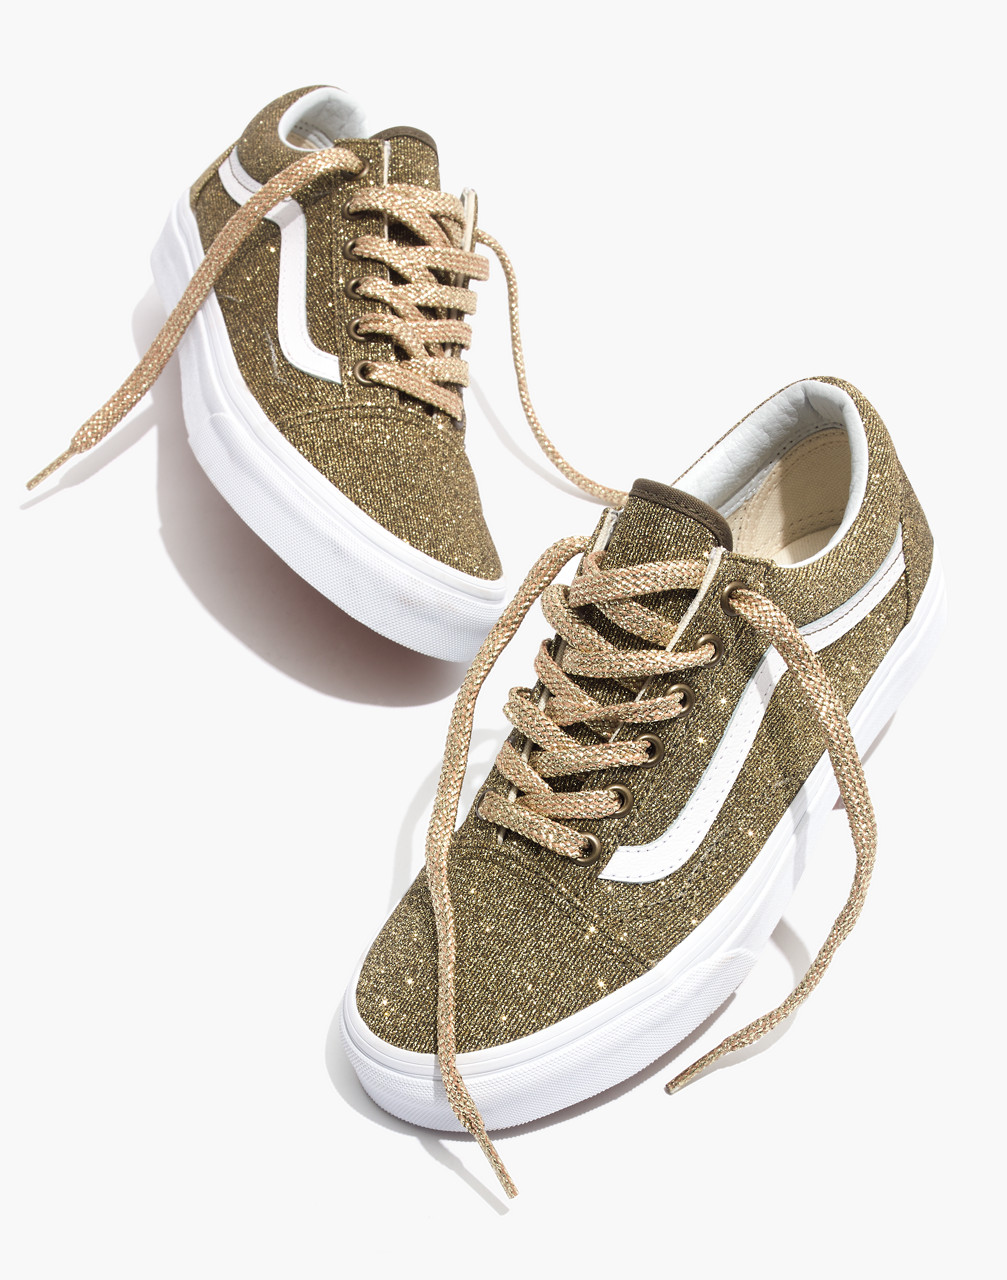 Vans Unisex Old Skool Lace-Up Sneakers in Gold Glitter